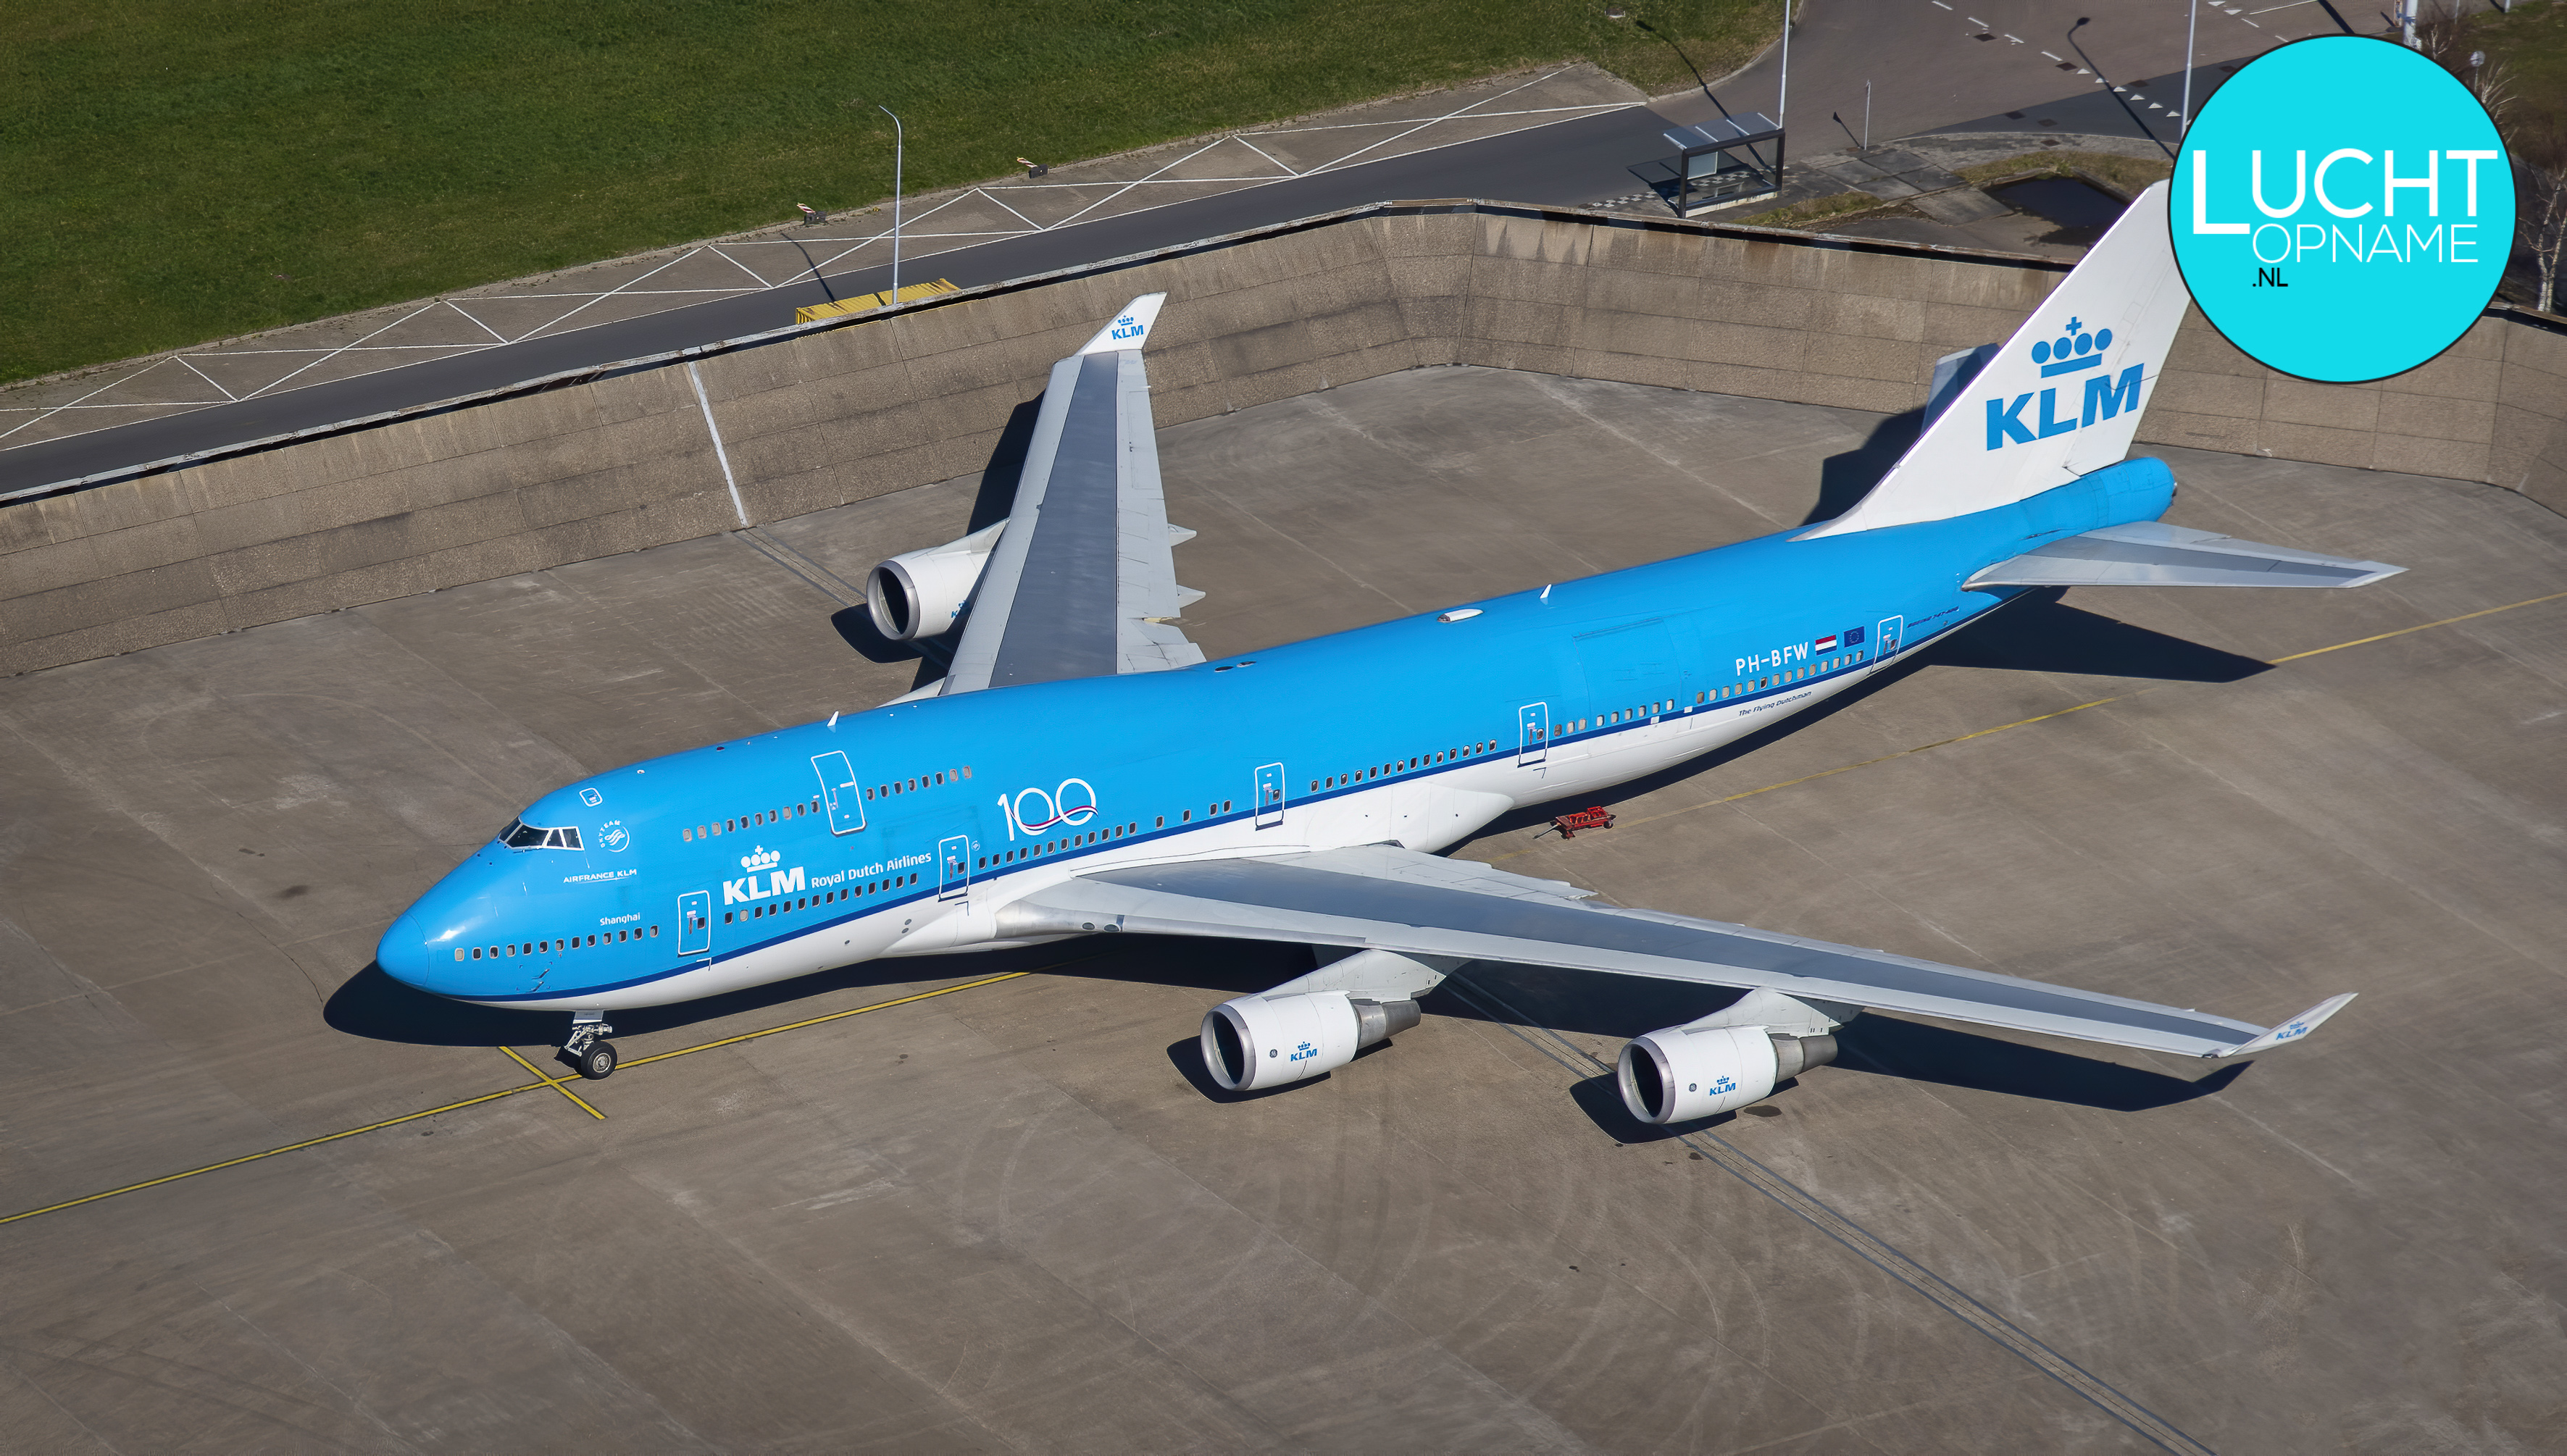 Luchtfoto KLM 747